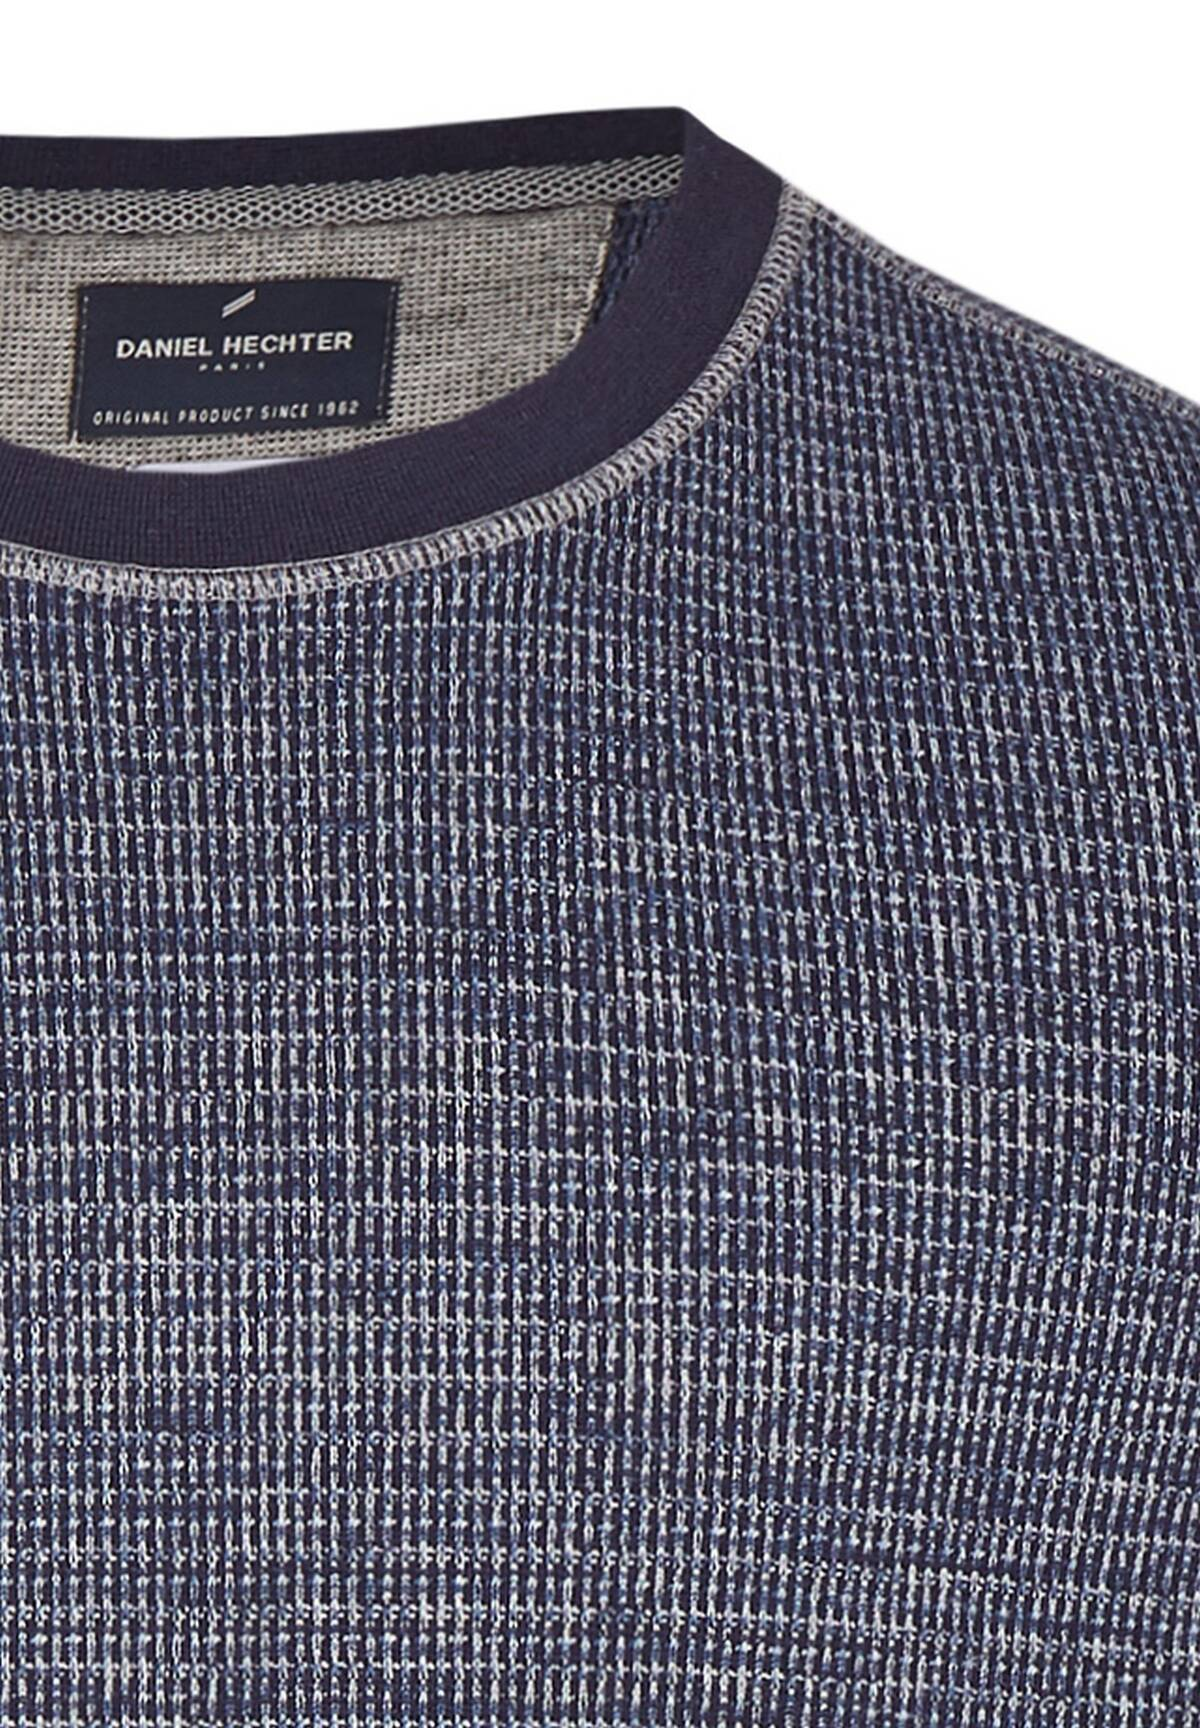 Modischer Sweater / CREW NECK